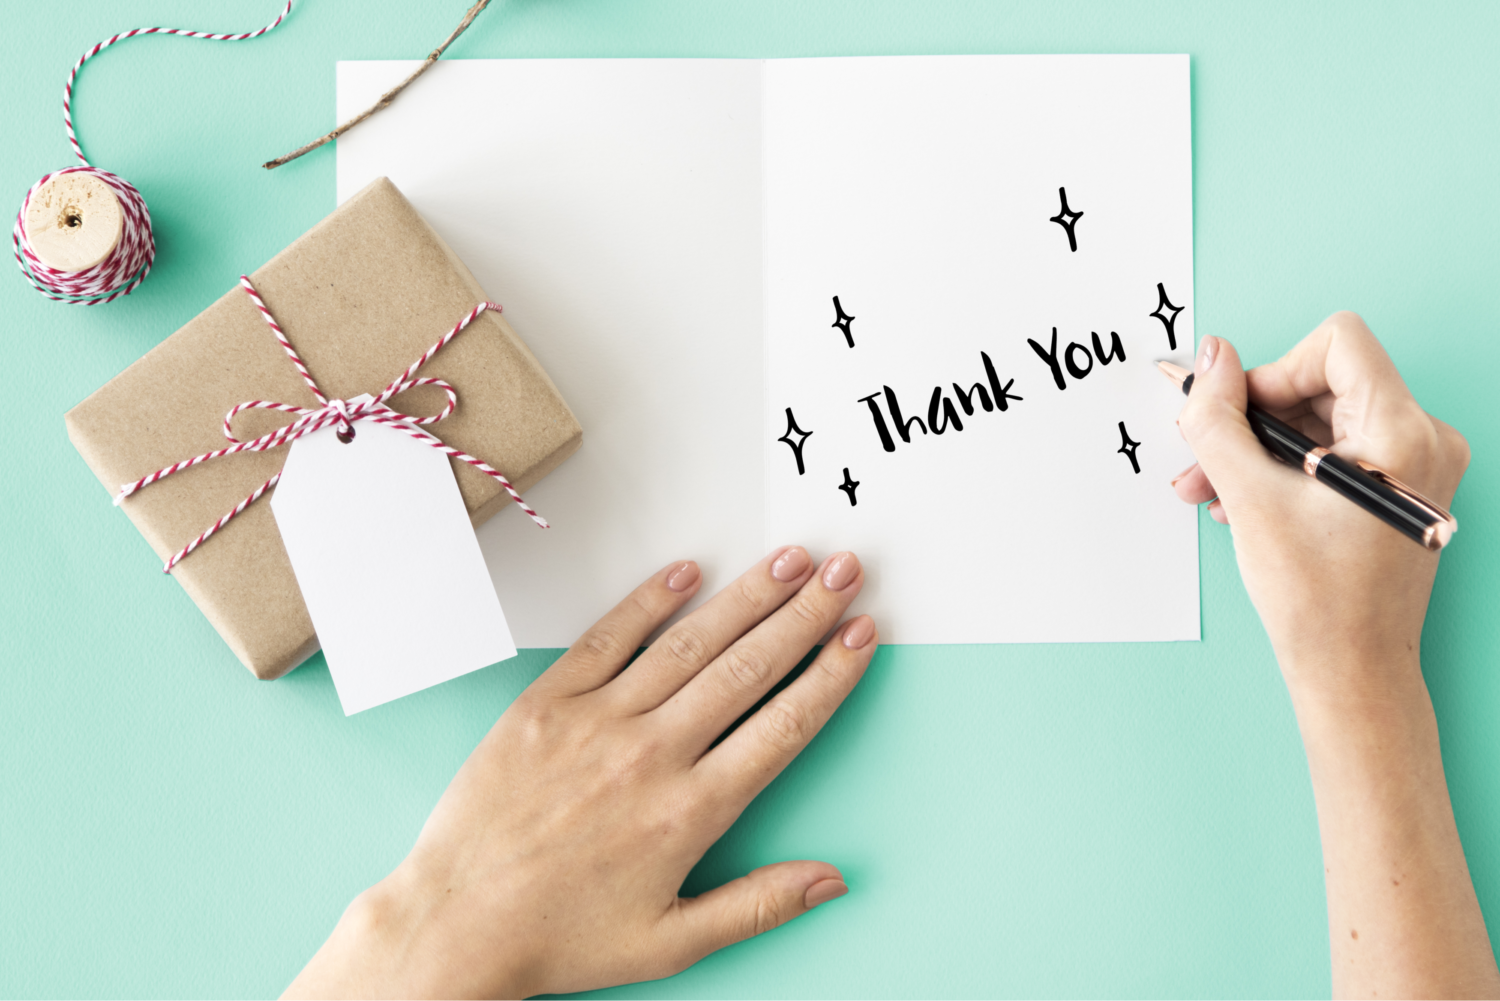 3 Good Ideas for Volunteer Appreciation This Christmas